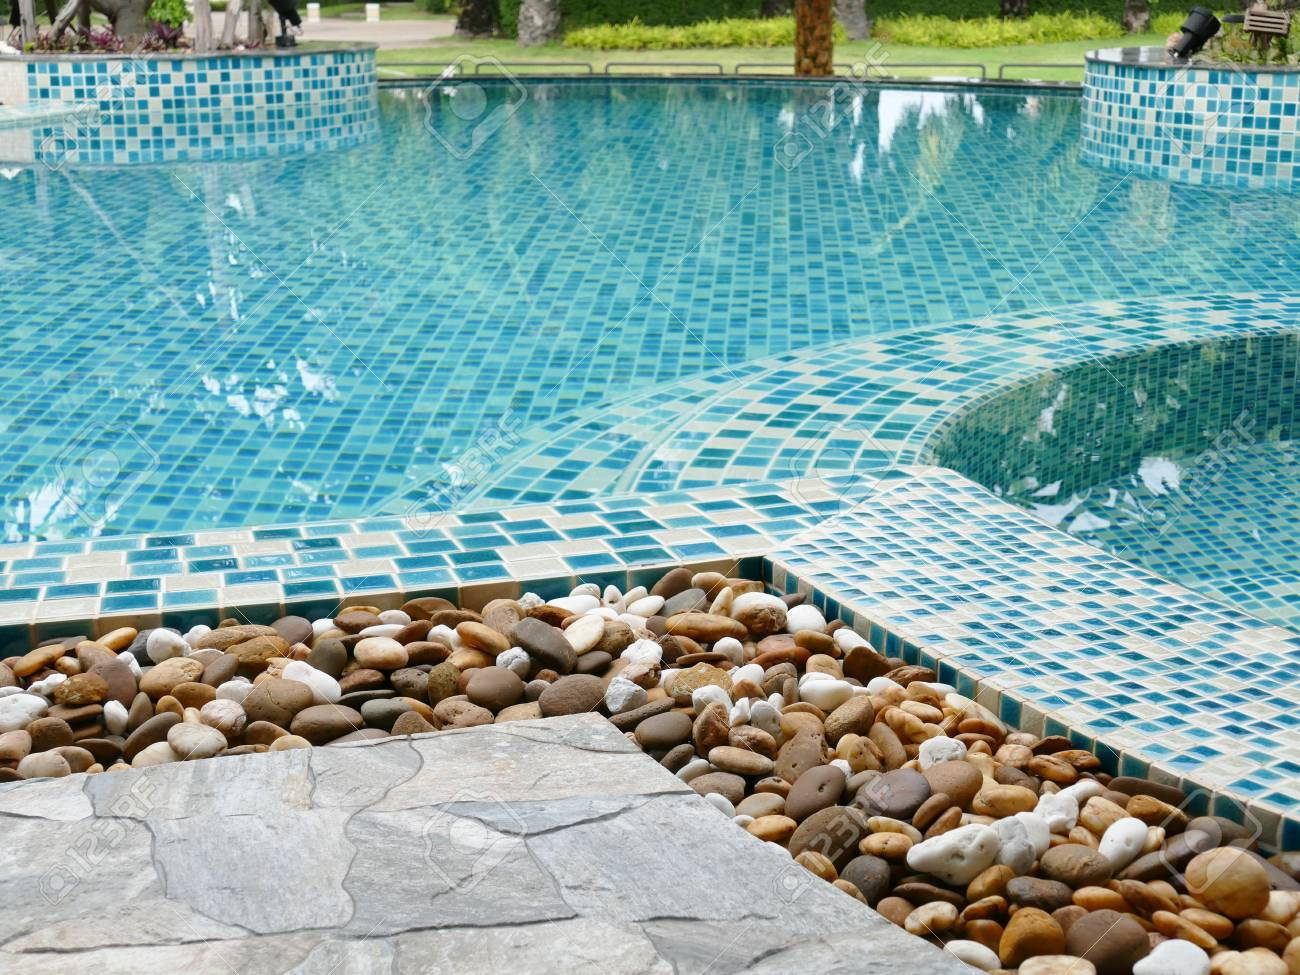 Small Stone Decorating On The Edge Of The Swimming Pool Stock Photo Picture And Royalty Free Image Image 43098992